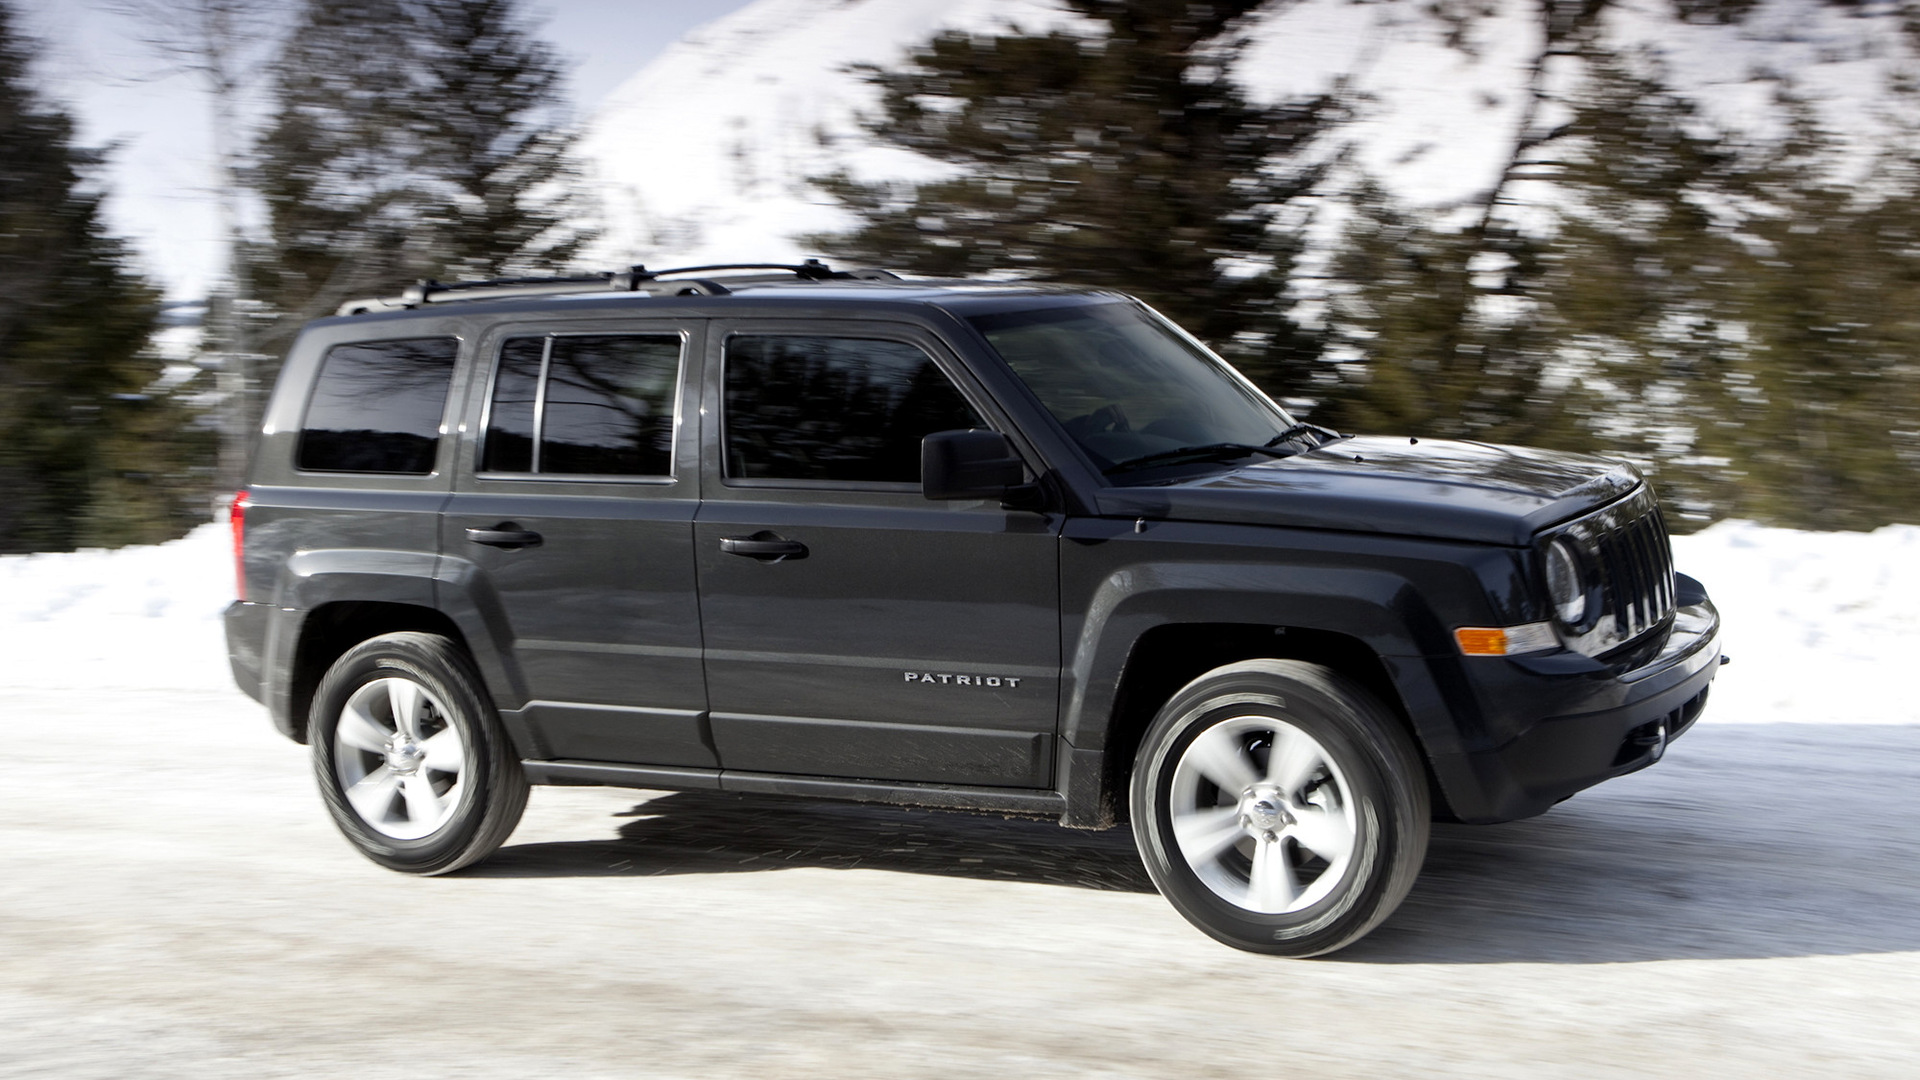 jeep patriot 2010 wallpapers and hd images car pixel. Black Bedroom Furniture Sets. Home Design Ideas